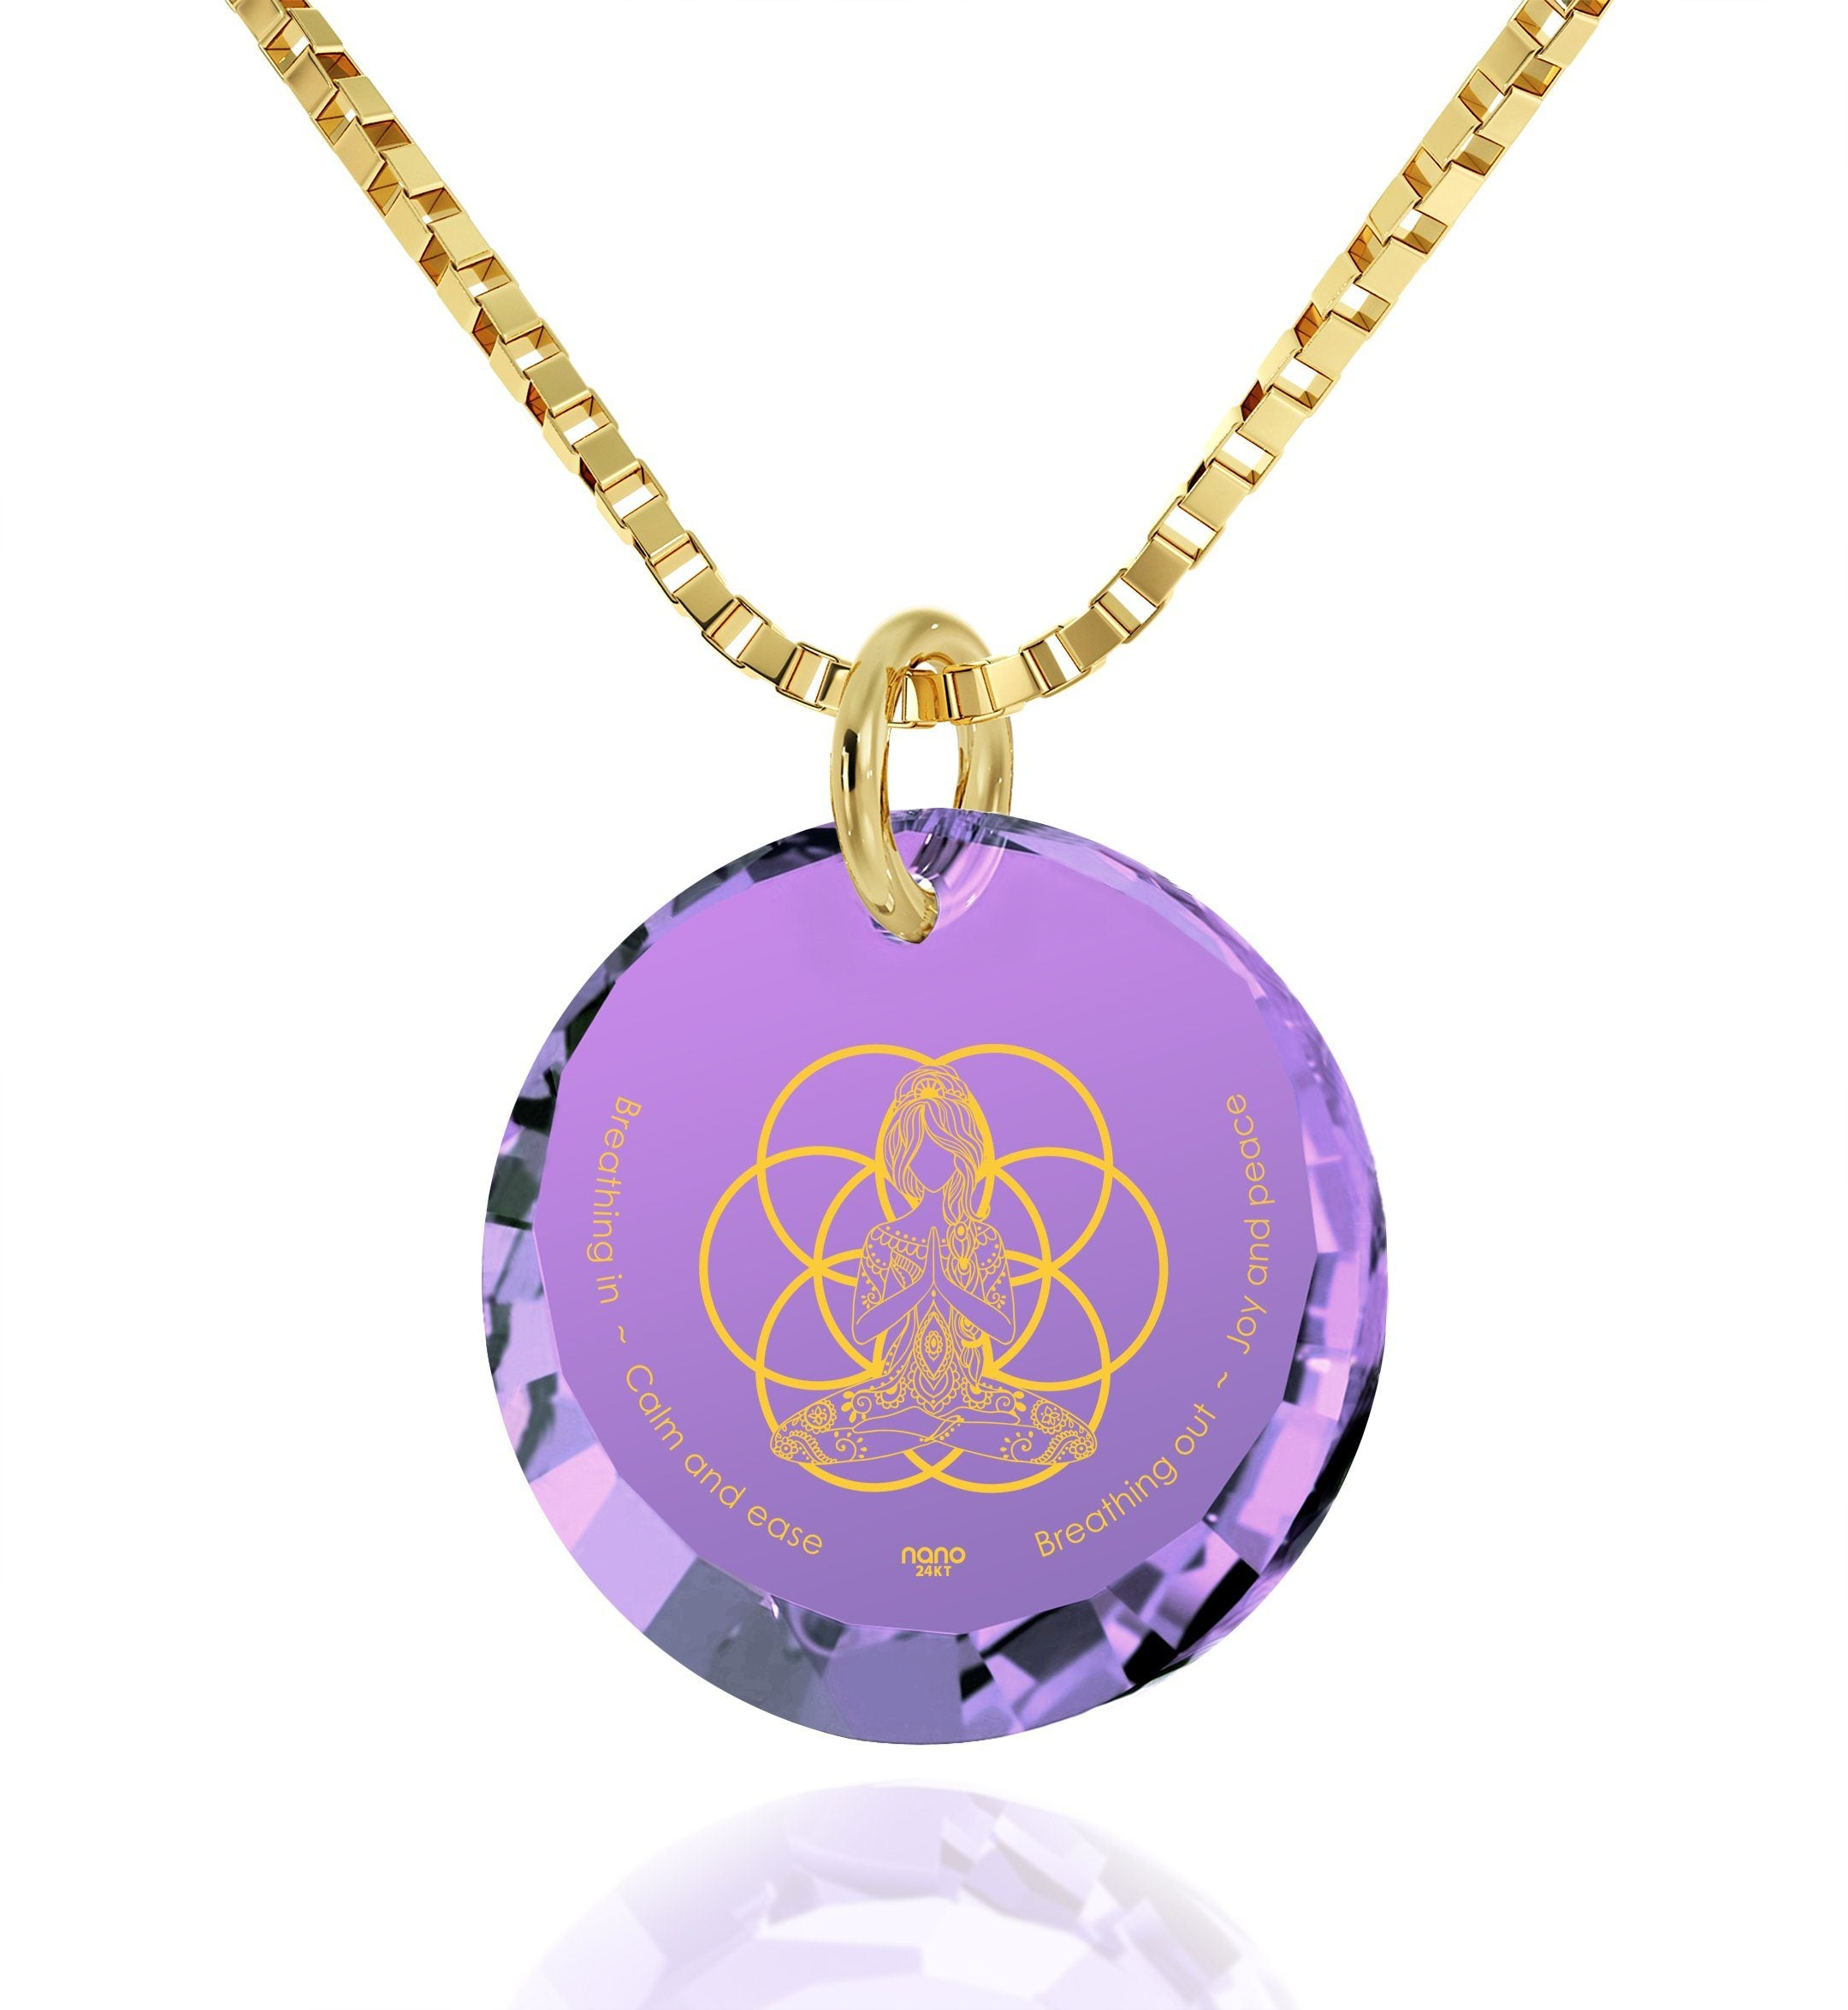 """Breathe in, Breathe out"" Engraved in 24k, Spiritual Jewelry with Amethyst Stone, Religious Gifts for Women, Nano Jewelry"